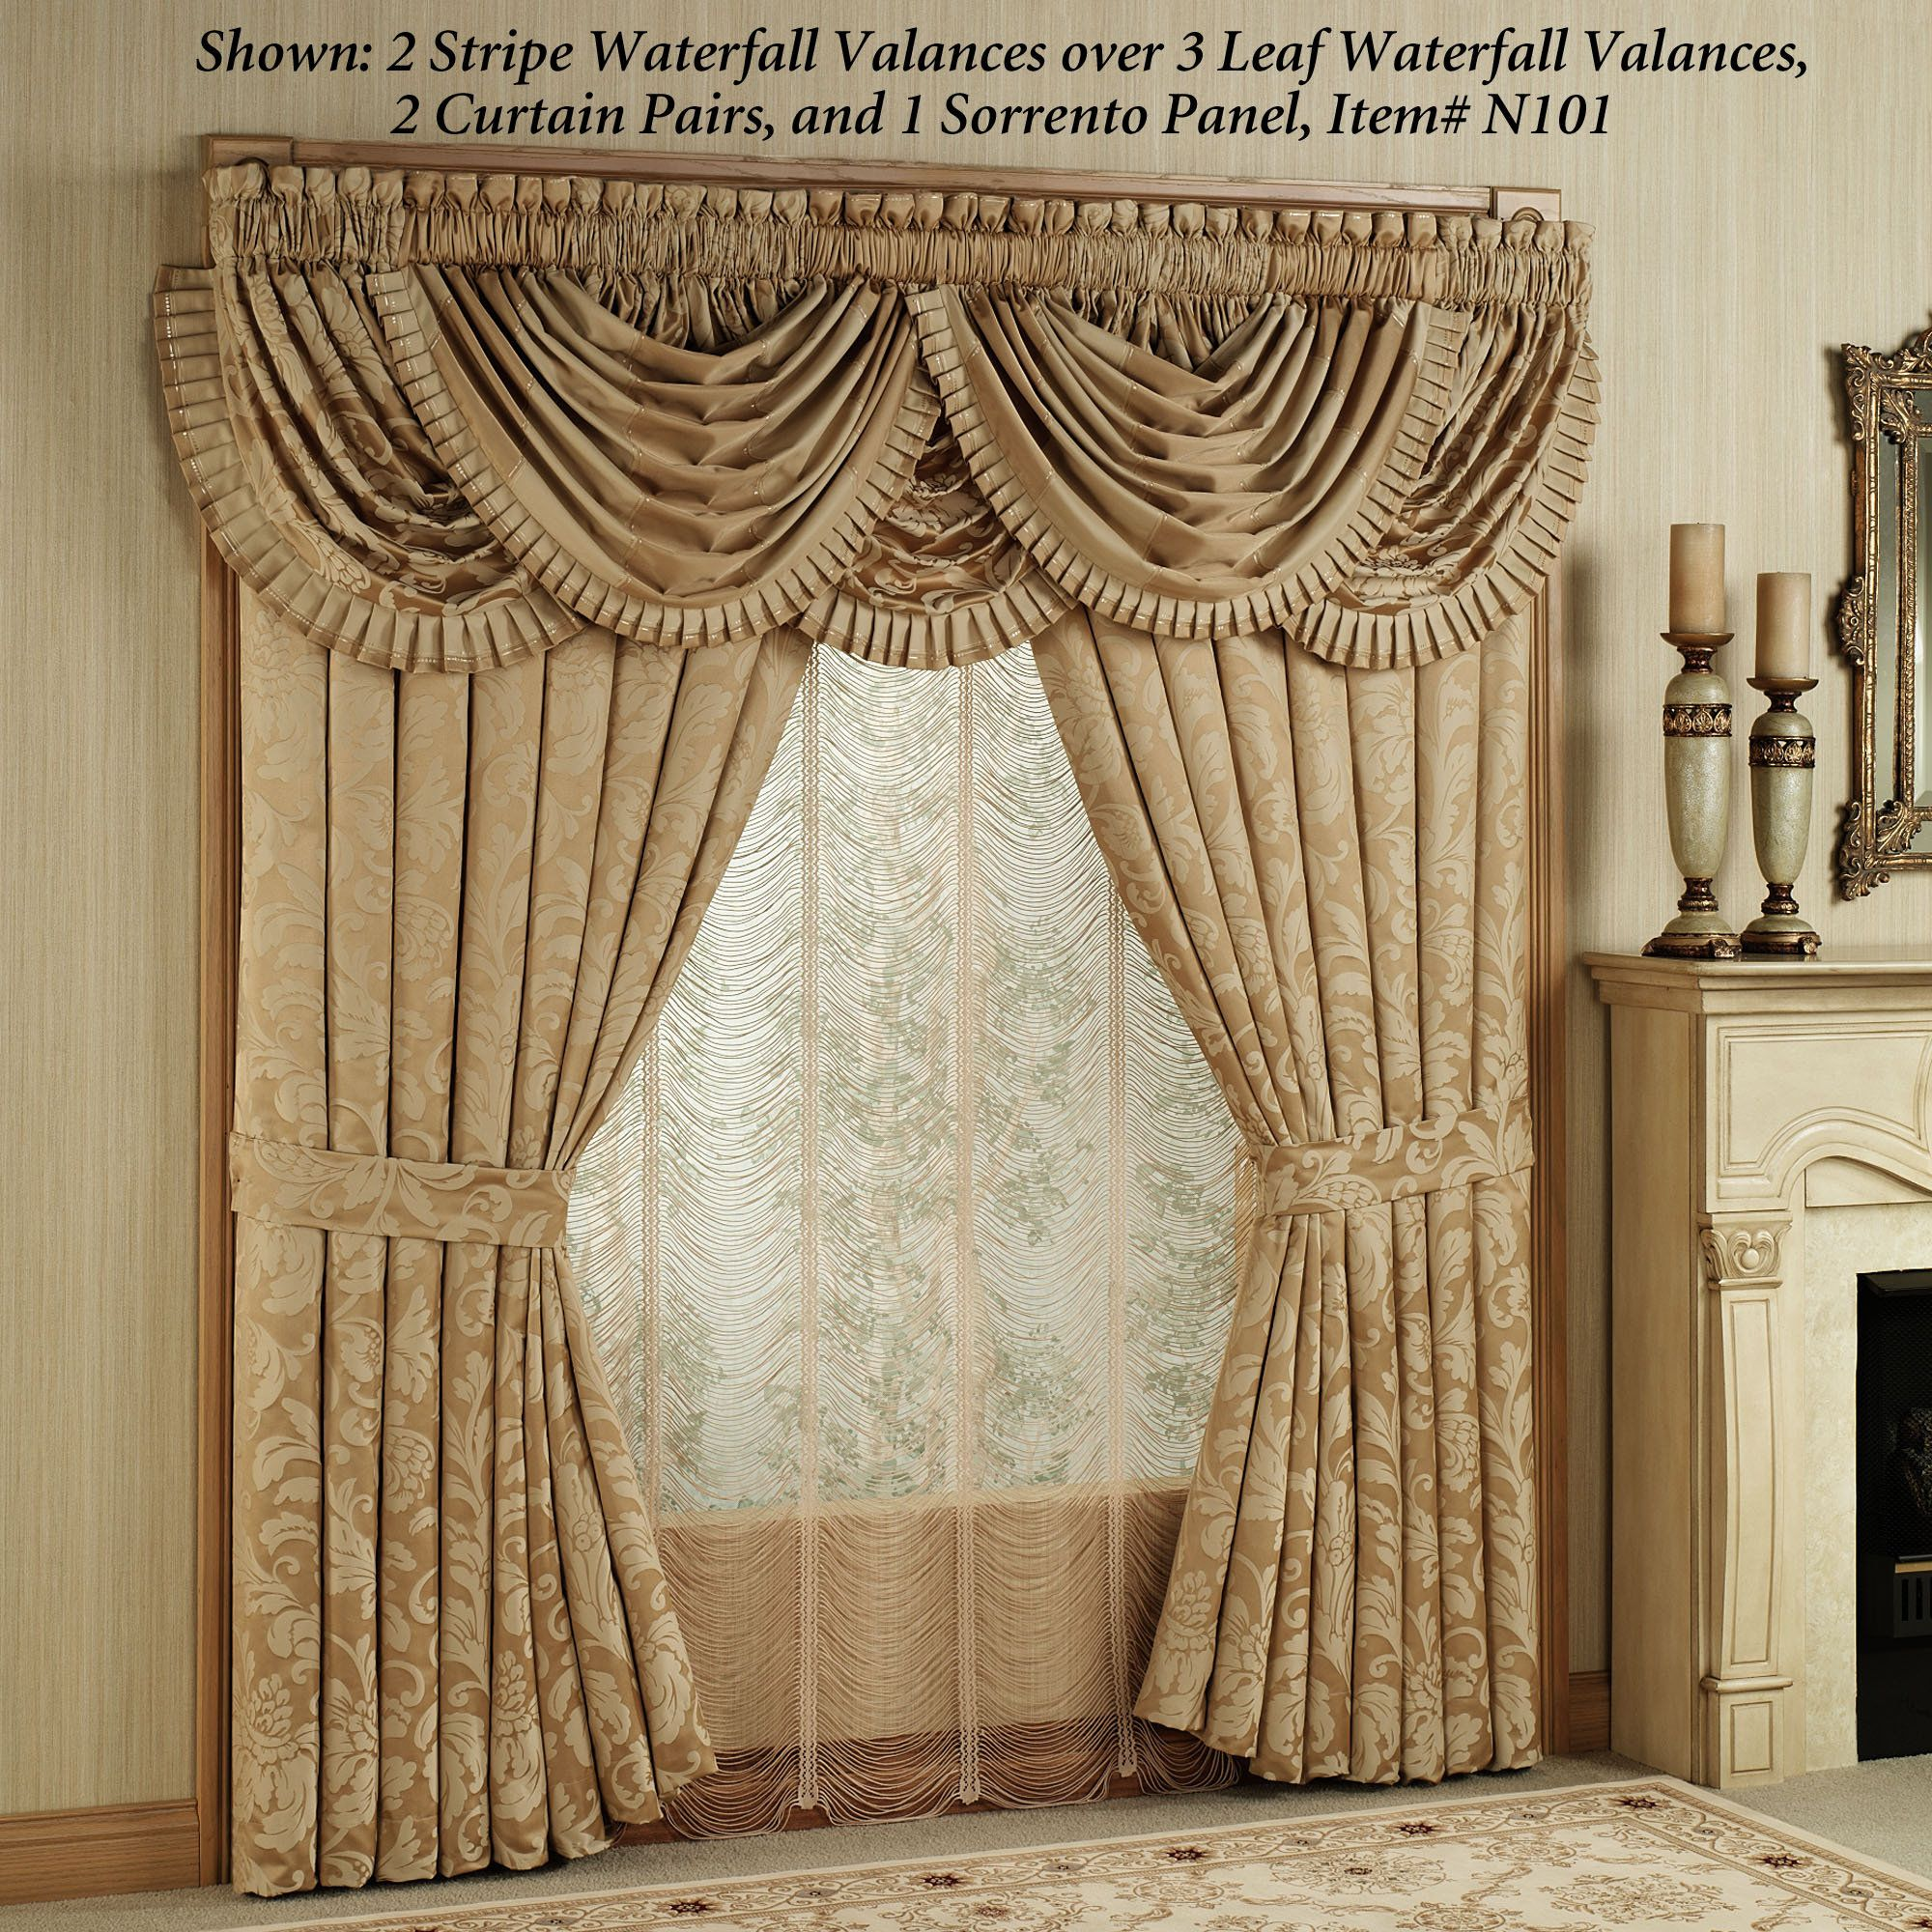 curtains and valances | Home Regent Gold Leaf Waterfall ...